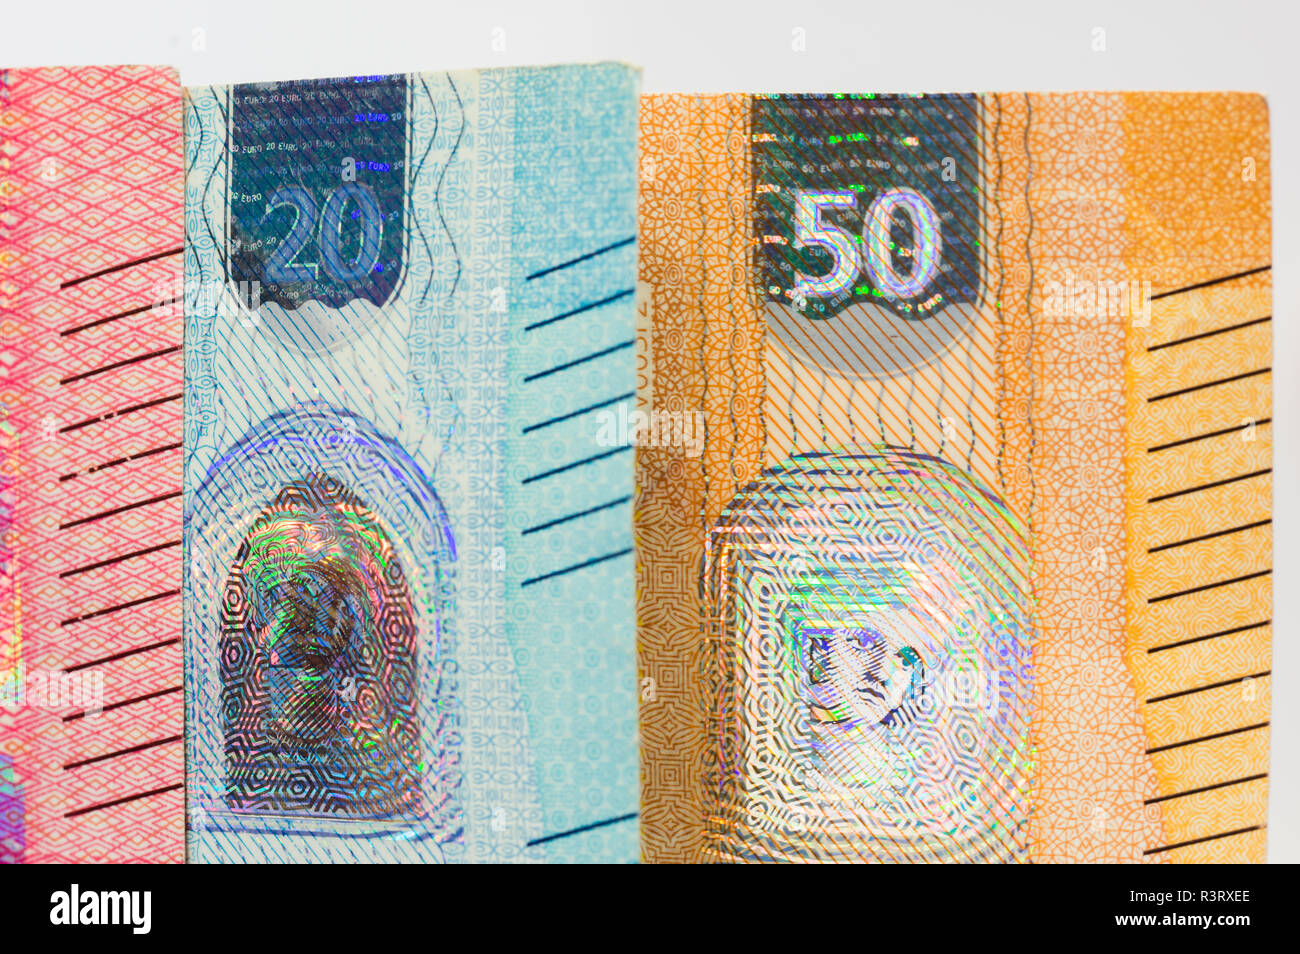 closeup of news banknotes of fifty and twenty euros bill. - Stock Image